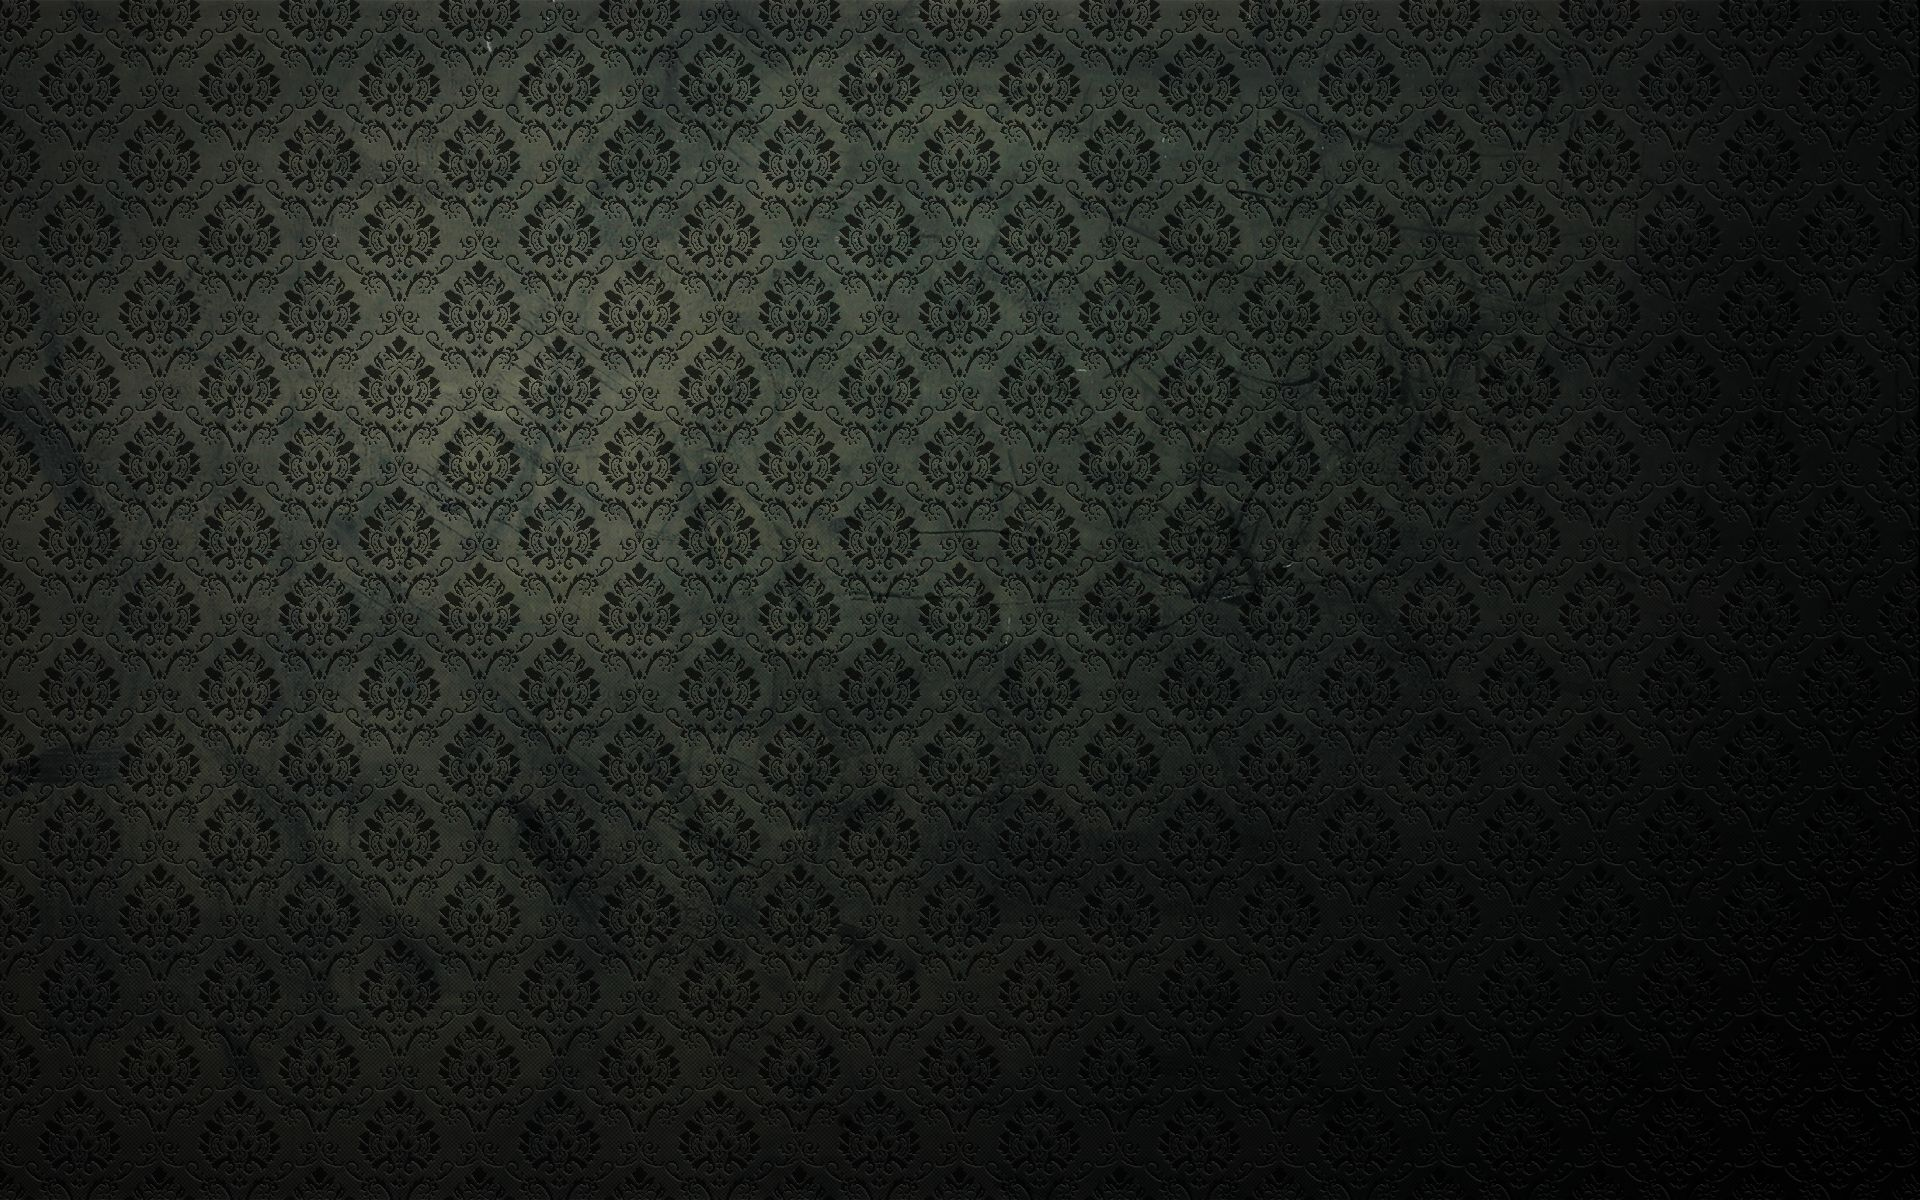 007 background image - Abstract Background 007 Wallpaper